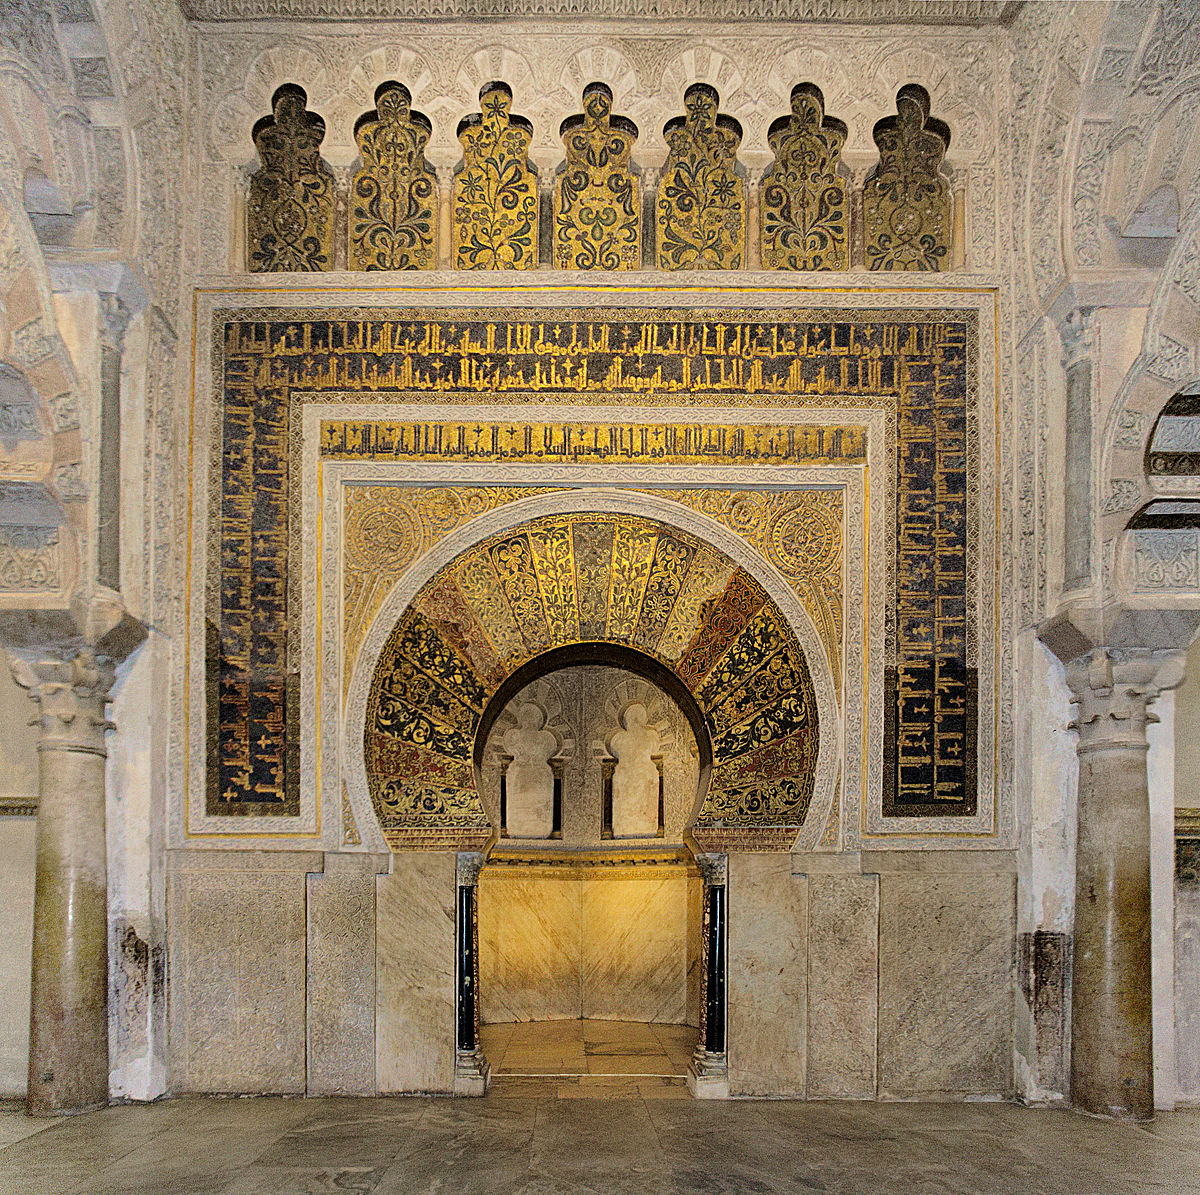 Mihrab wikipedia bahasa indonesia ensiklopedia bebas for Mezquita de cordoba interior